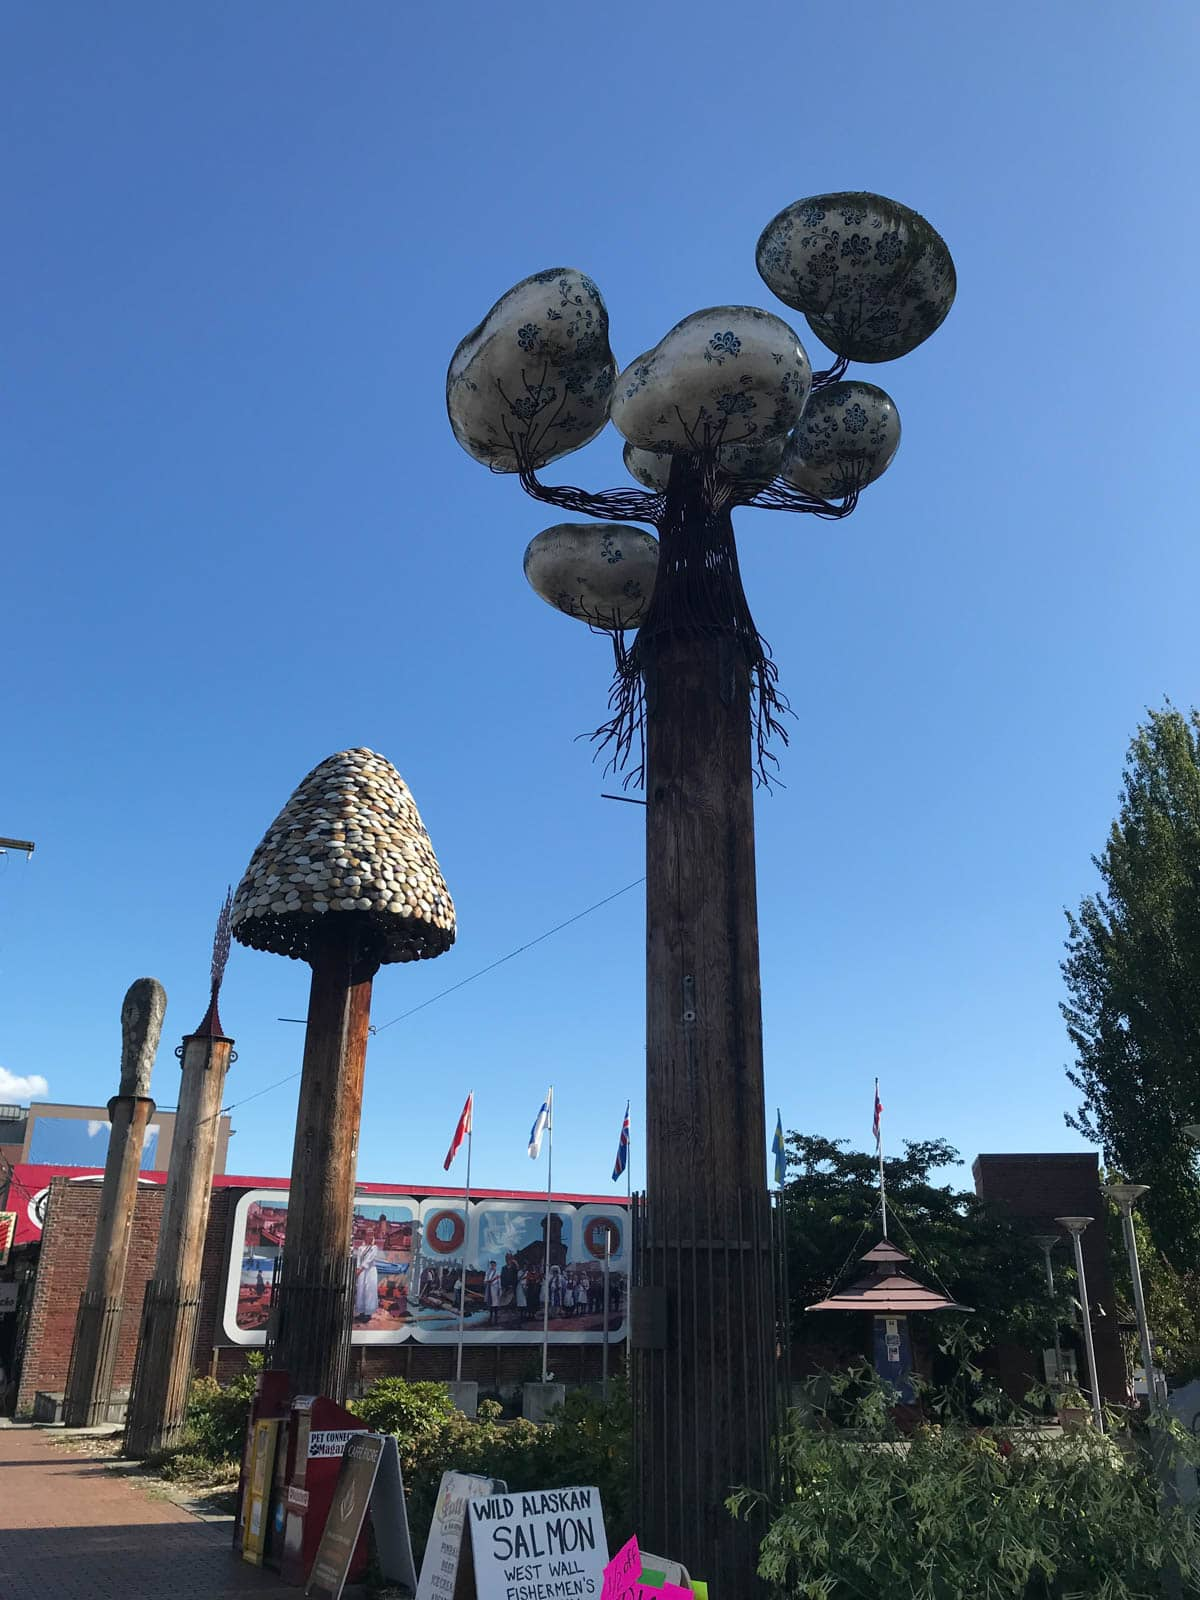 Some tall sculptures with mushroom tops, in the middle of an open park.